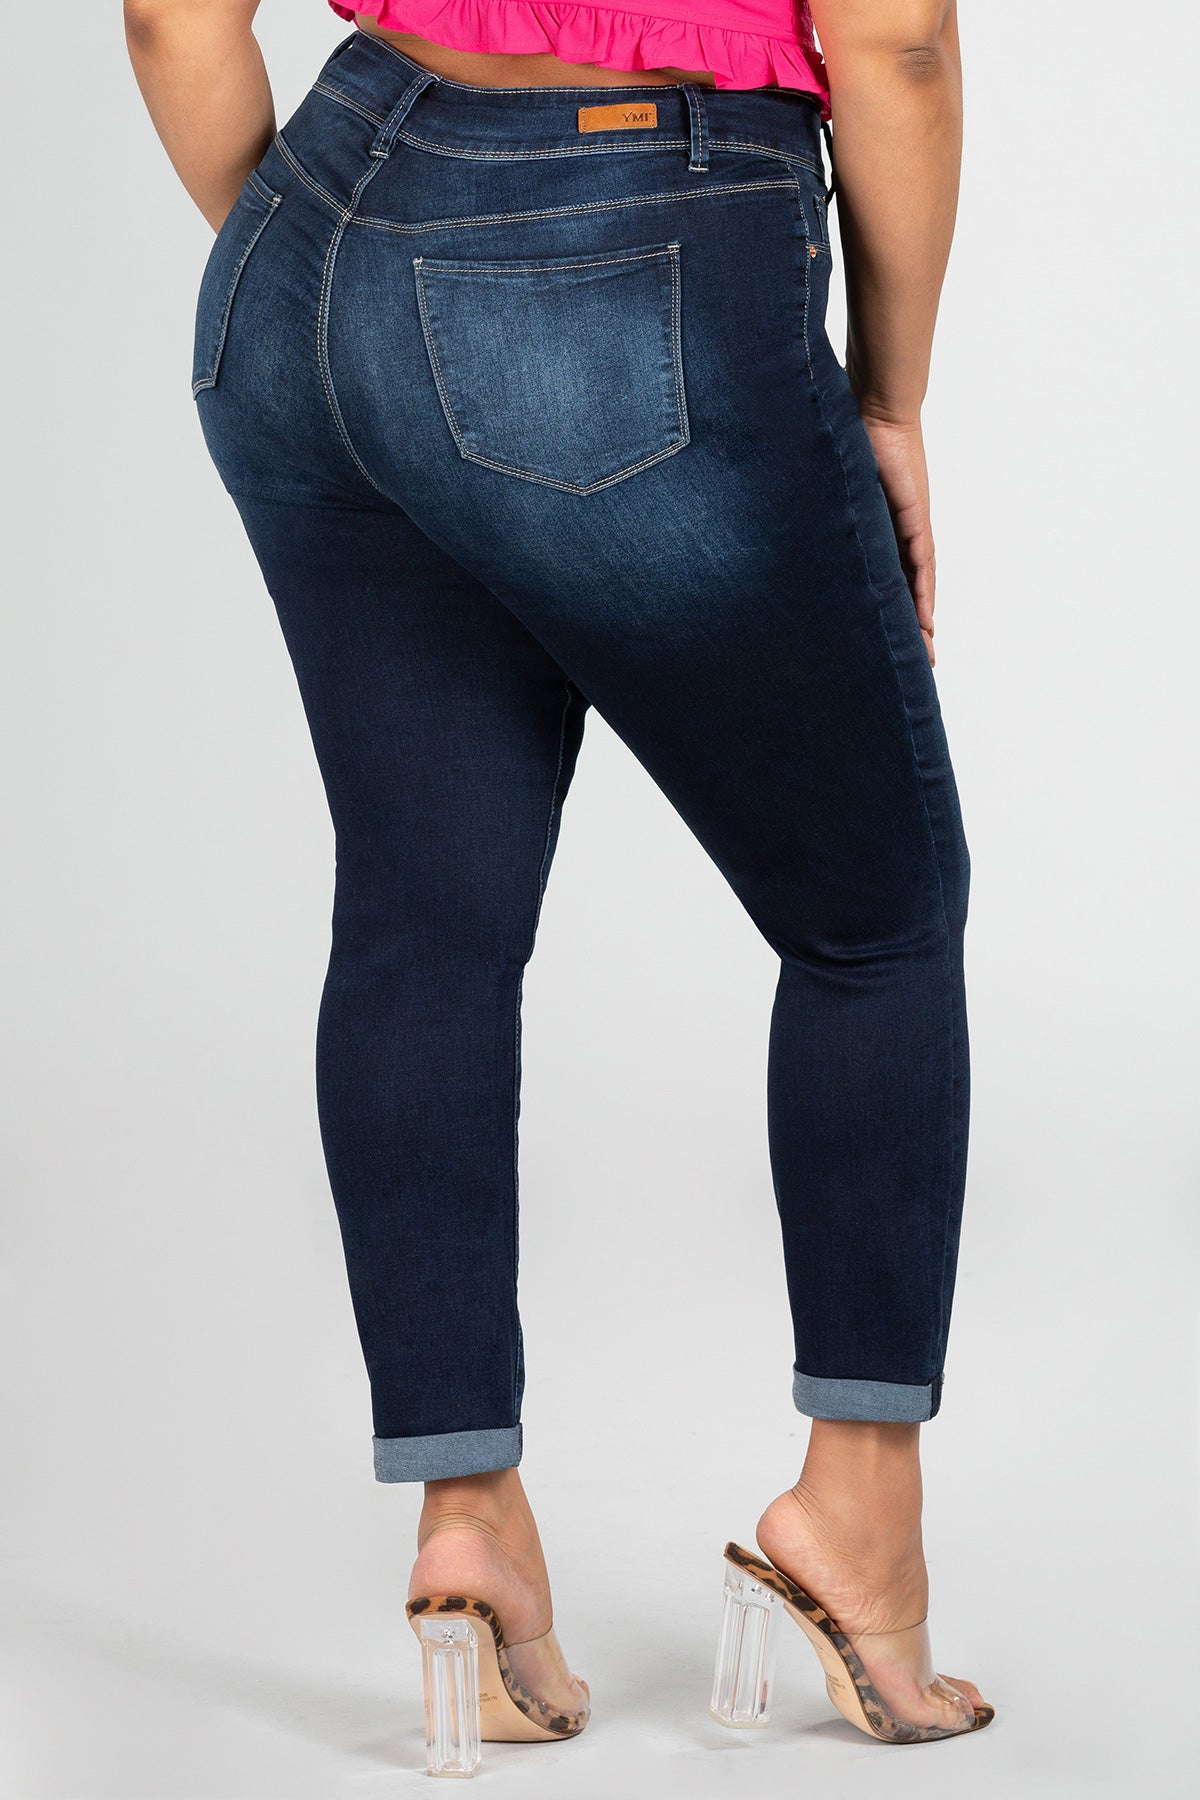 Soft to the Touch Denim - RESTOCK